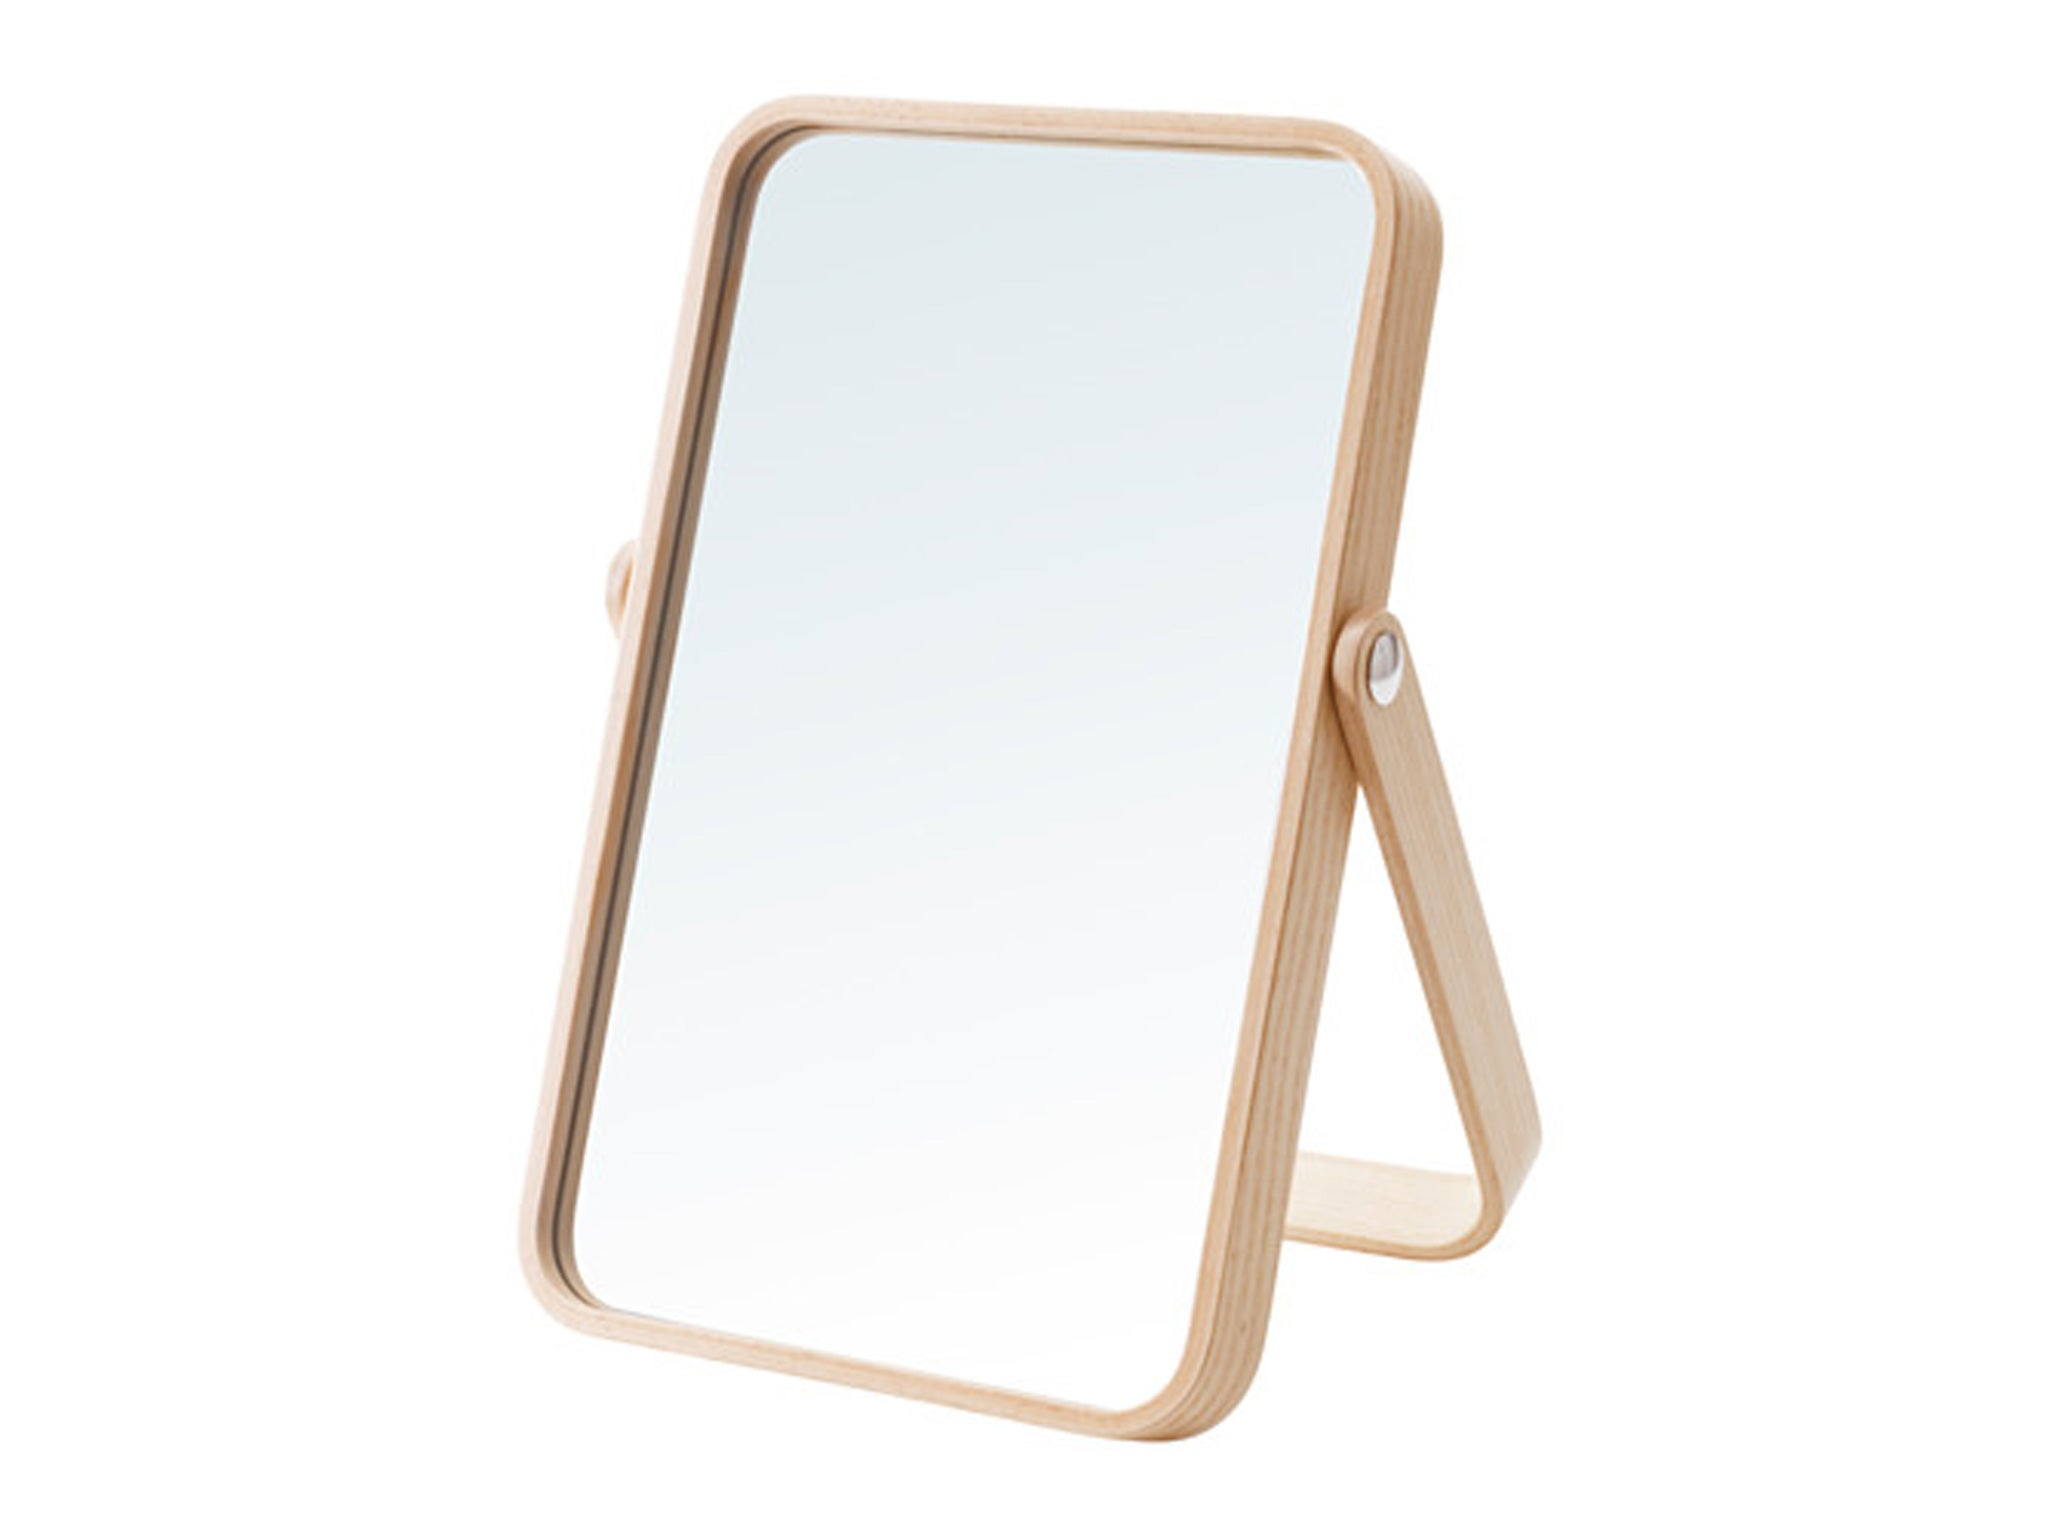 The Flexibility Of The Ikornnes Mirror Impresses Most. It Can Be Used As Table  Mirror Or A Hanging Mirror; The Stand Swings Flat To Form A Small Shelf  While ...